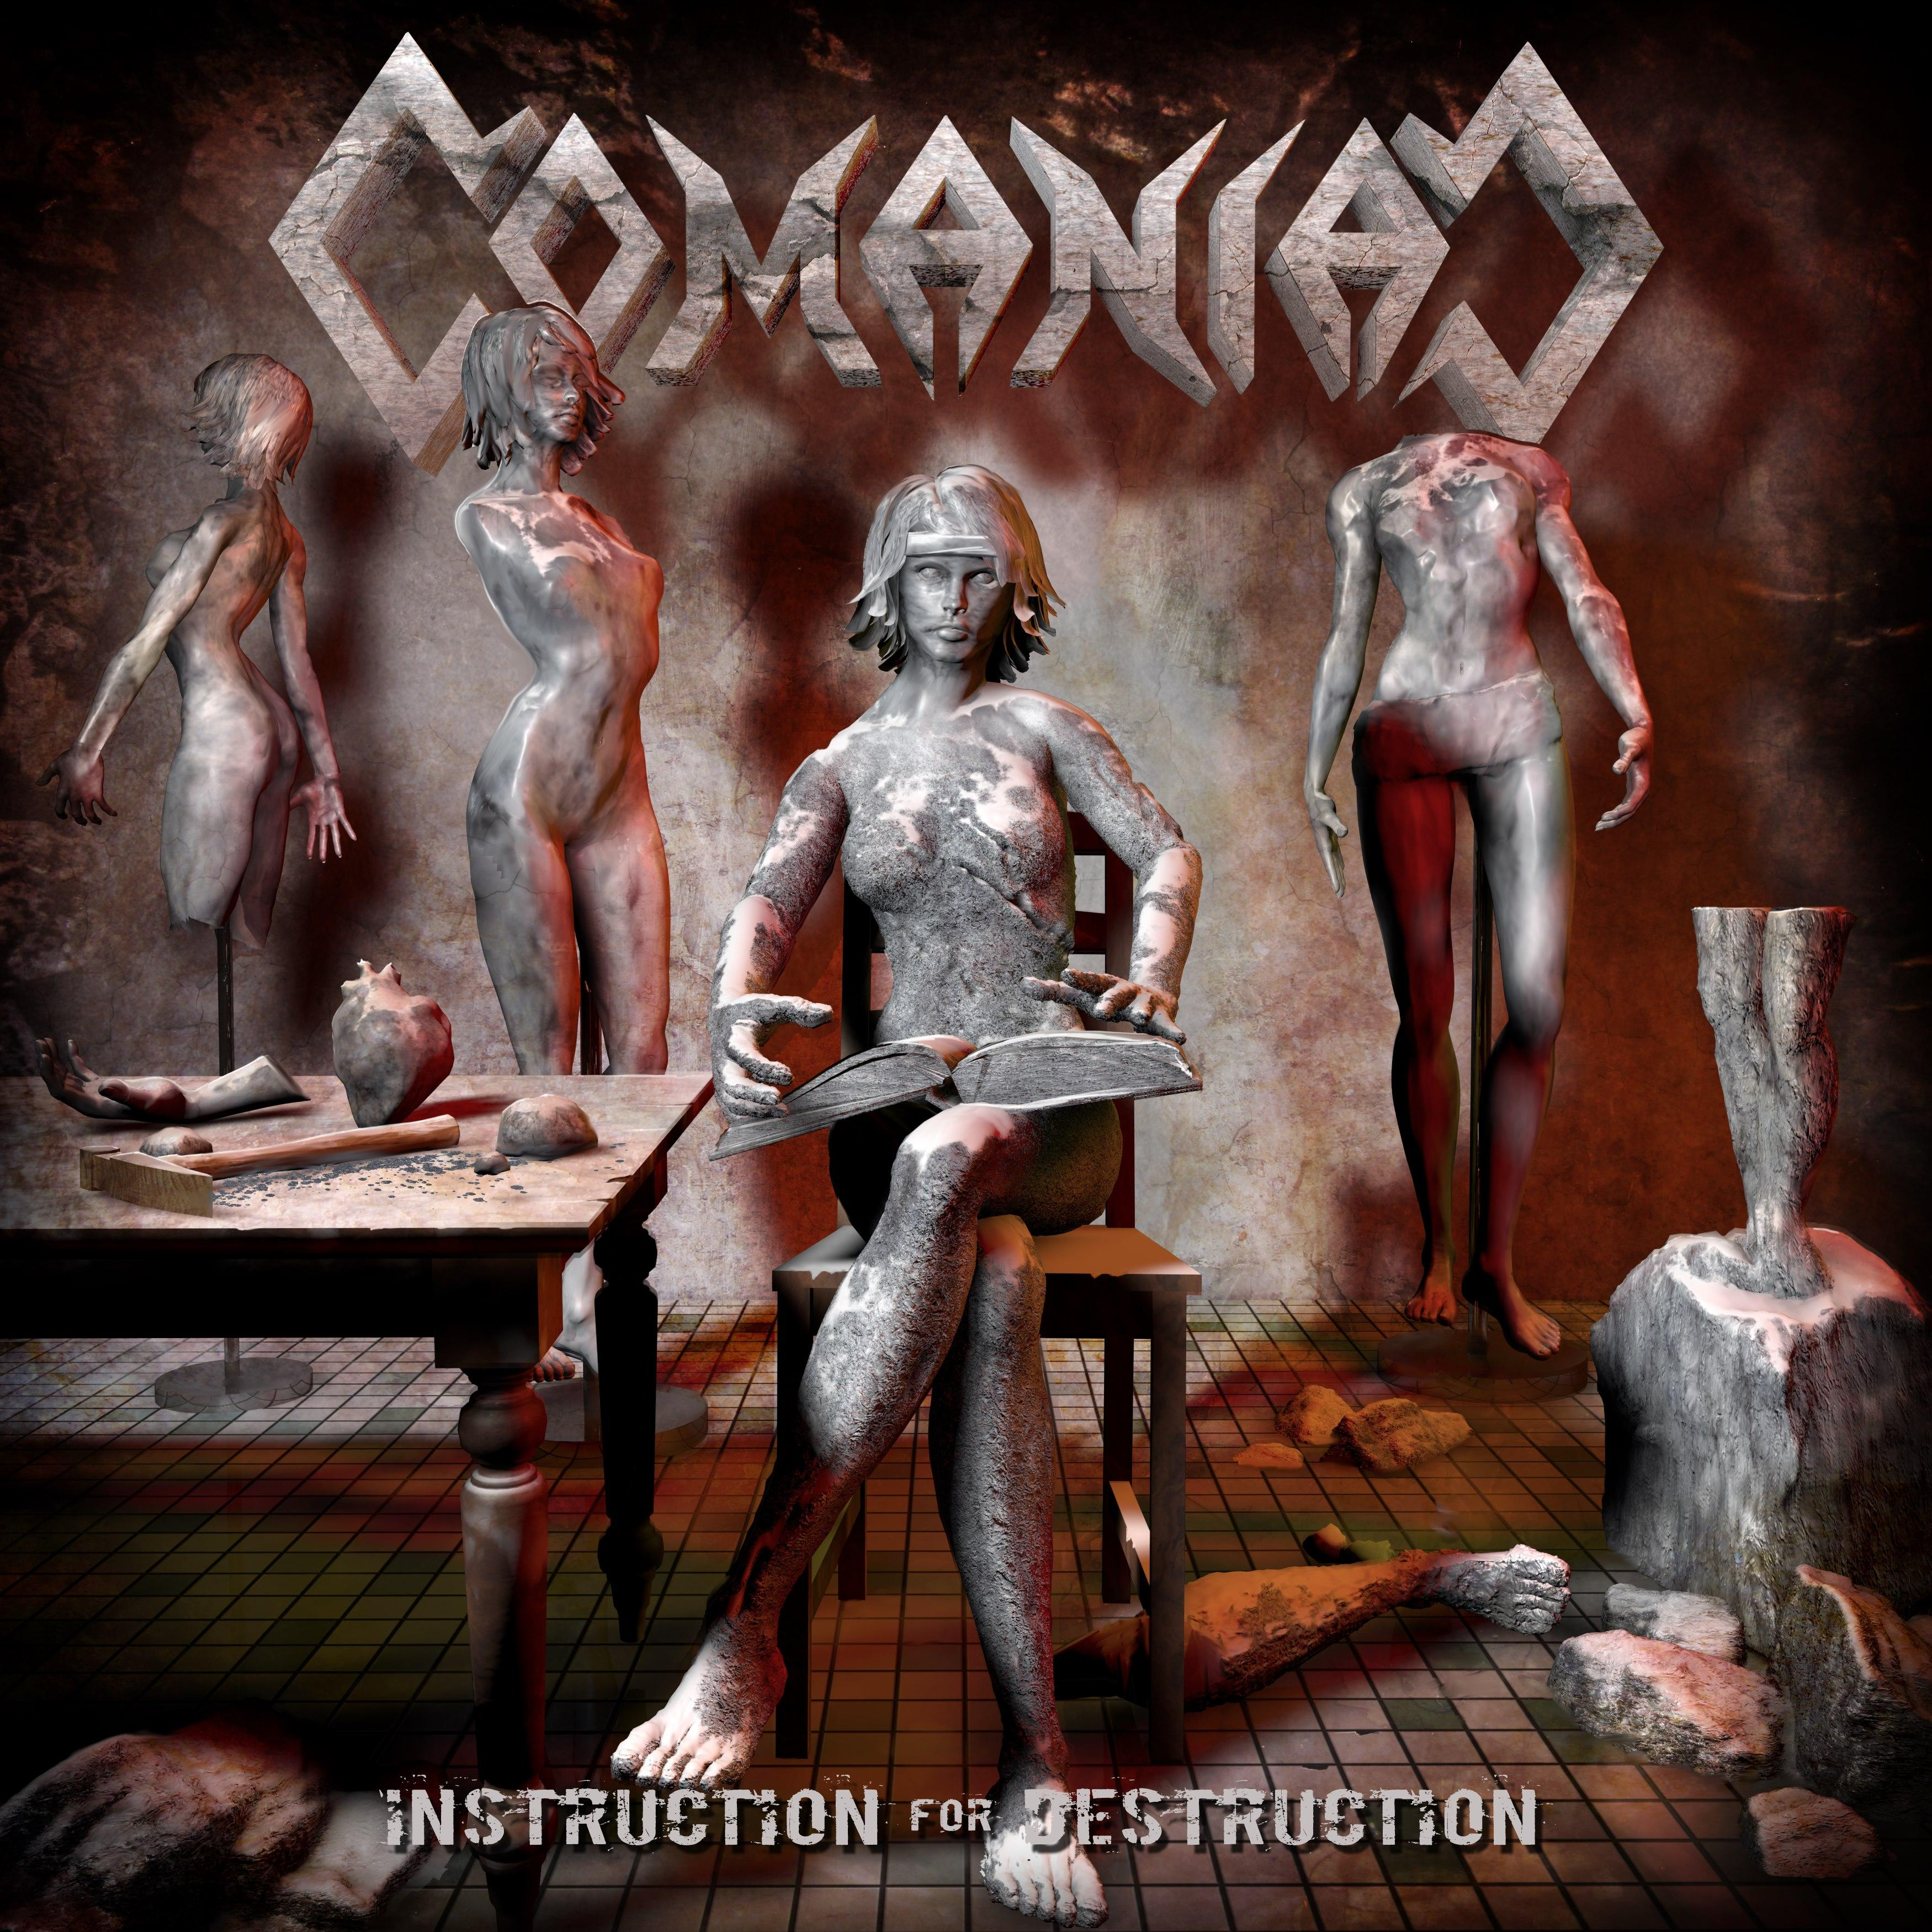 COMANIAC 'Instruction for Destruction' album cover